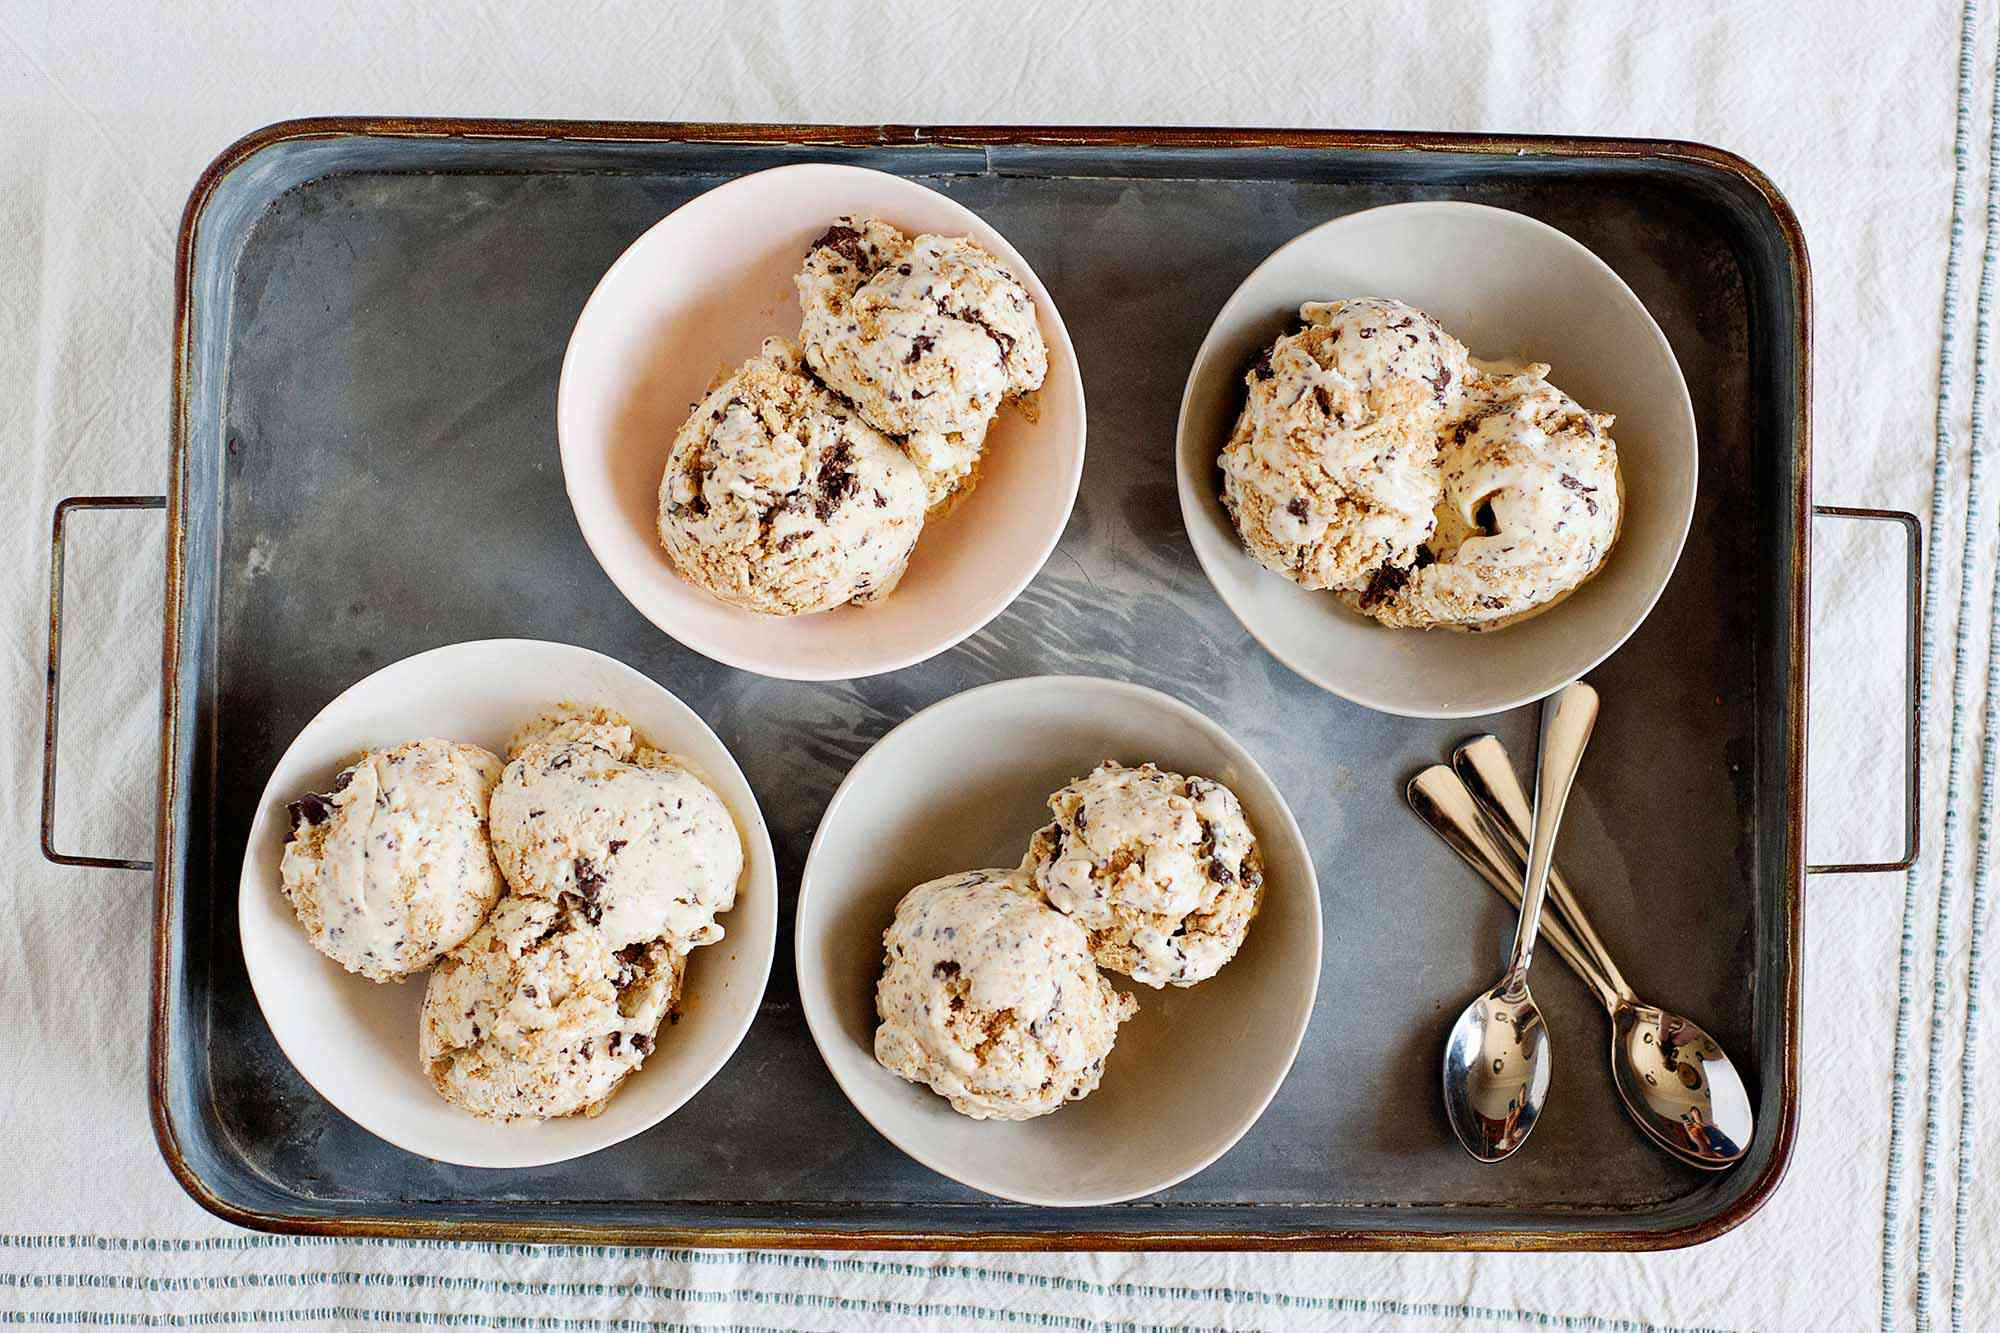 Homemade S'mores Ice Cream Recipe - scoops of ice cream in small bowls on a silver tray